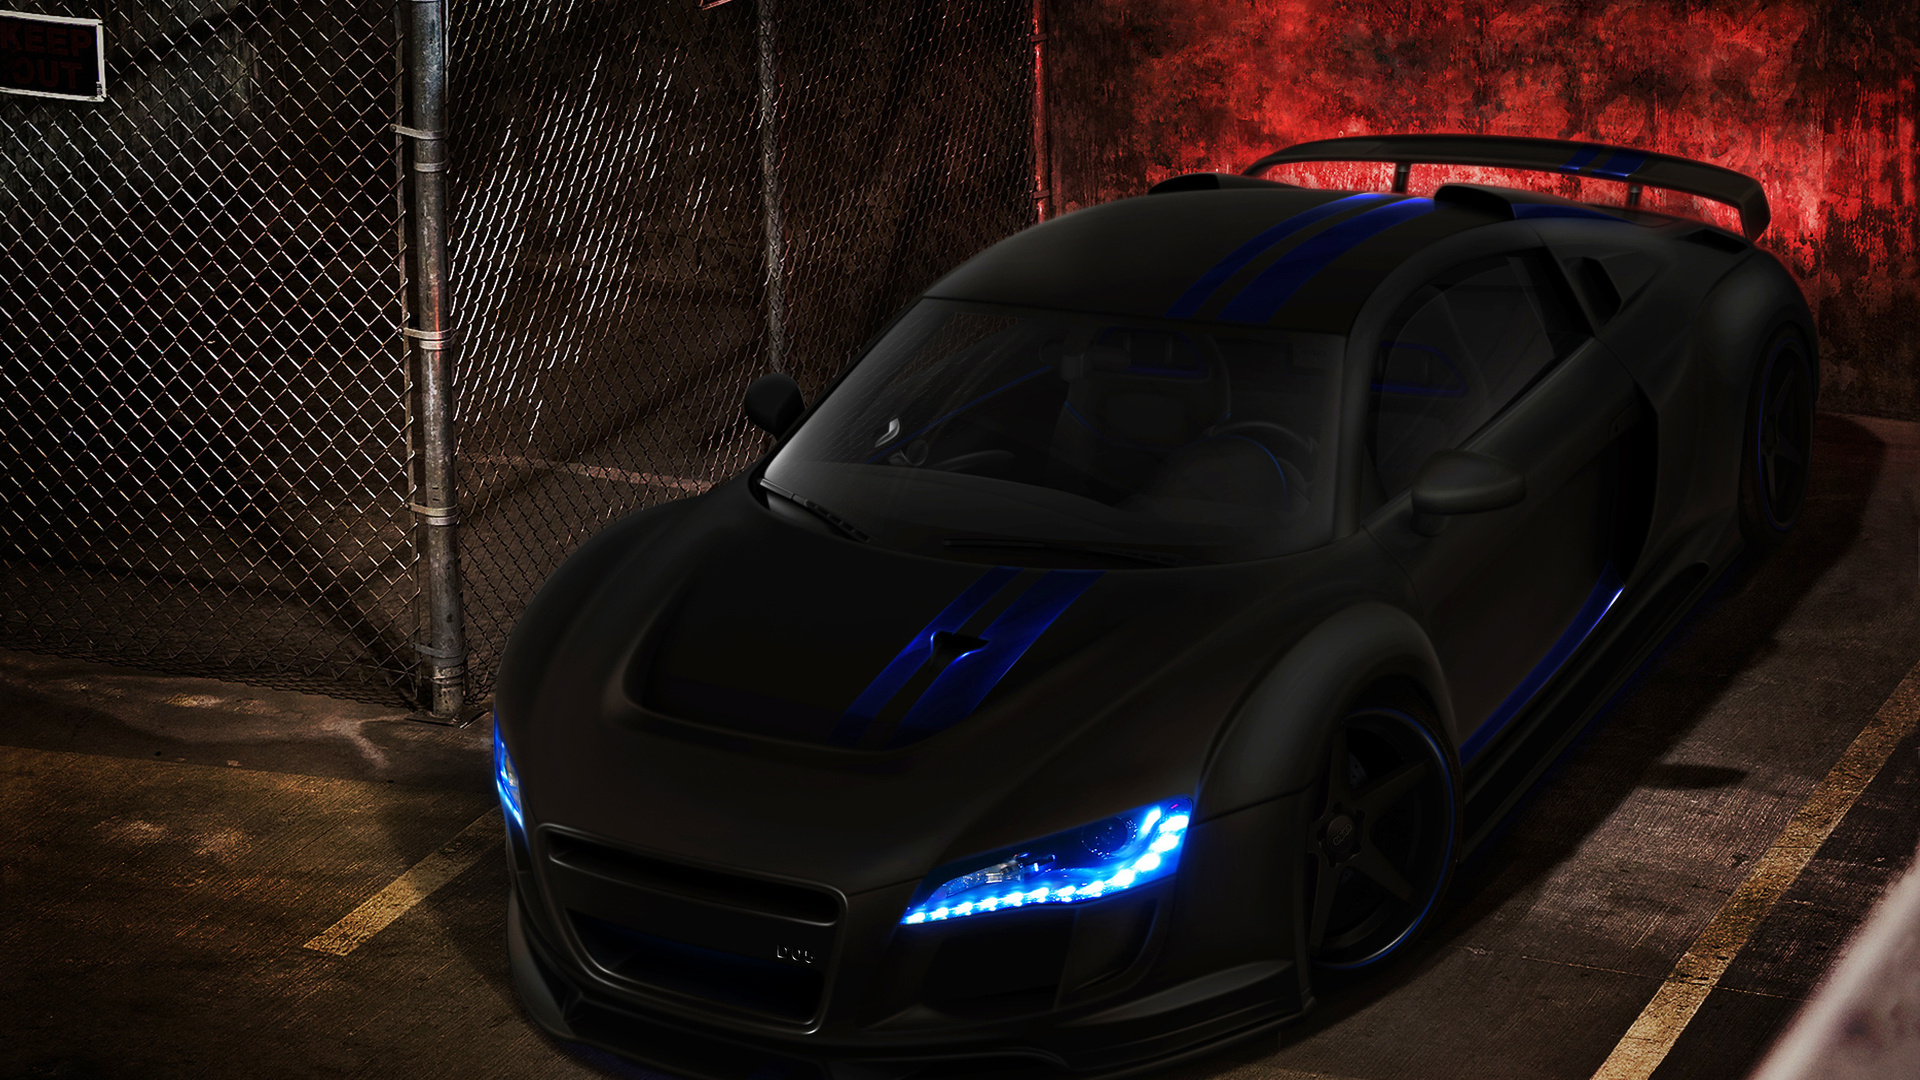 Wallpaper audi r8 black black tuning cars large 1920x1080 on the 1920x1080